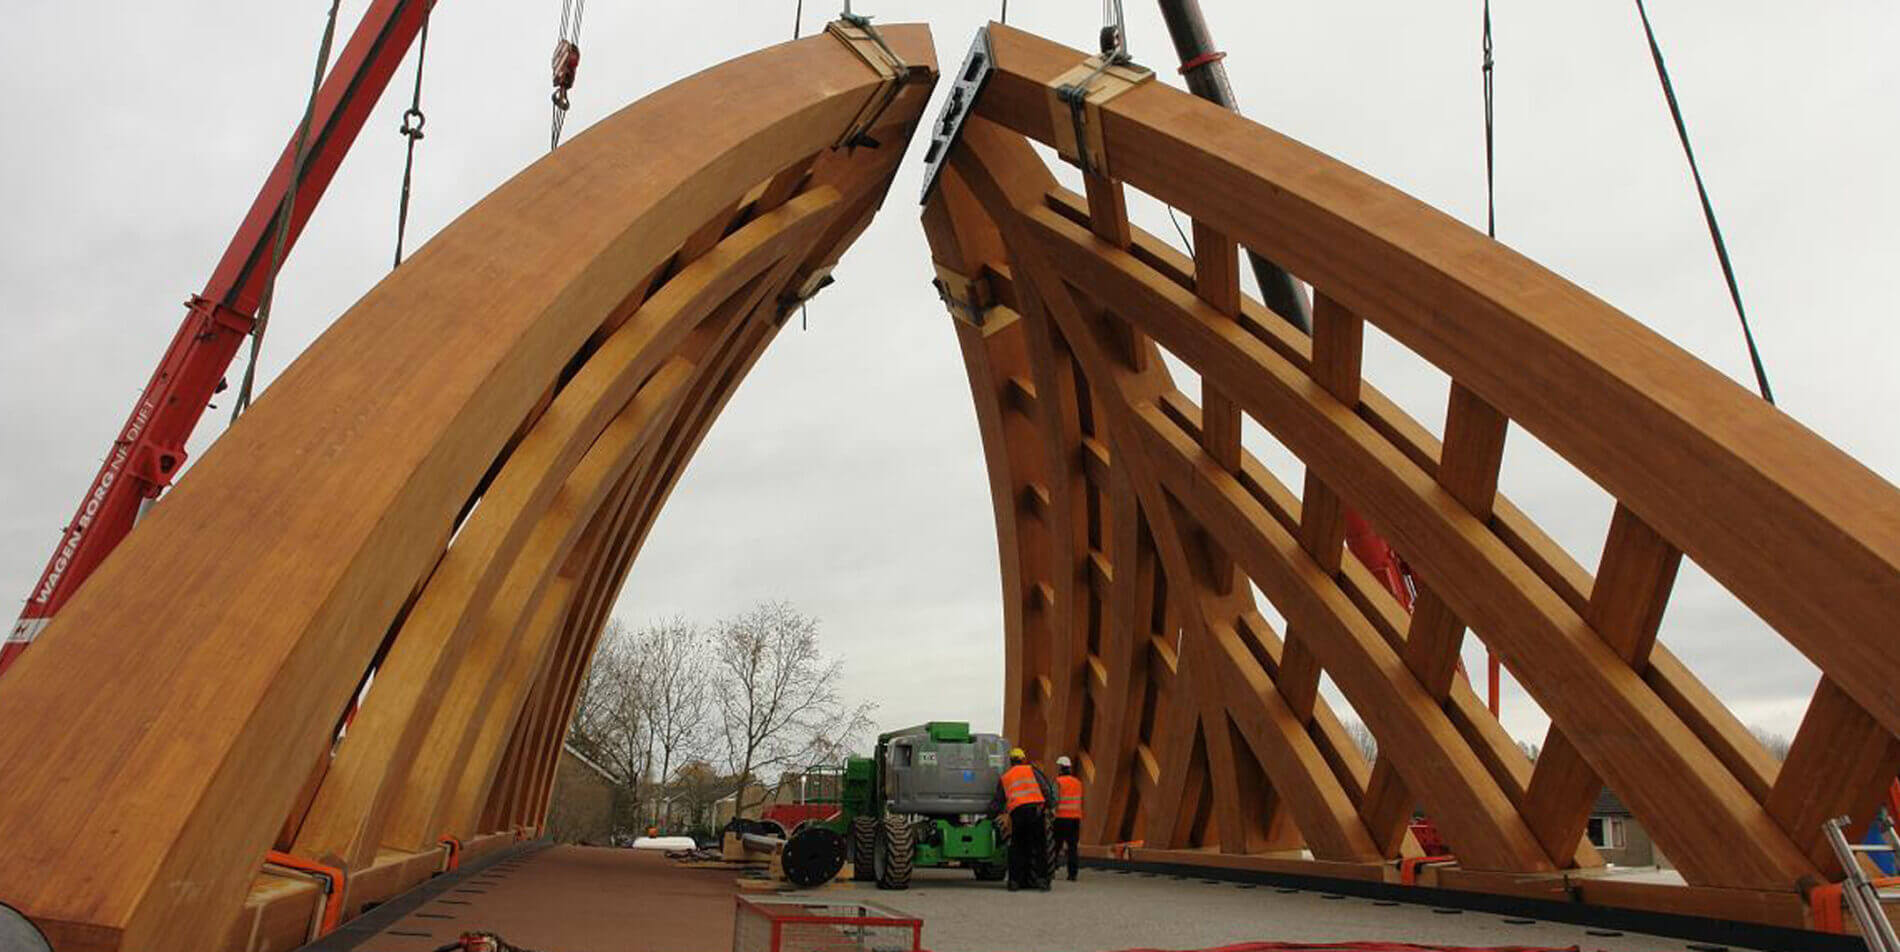 Quelle: Accoya | Accoya Sneek Bridge Netherlands